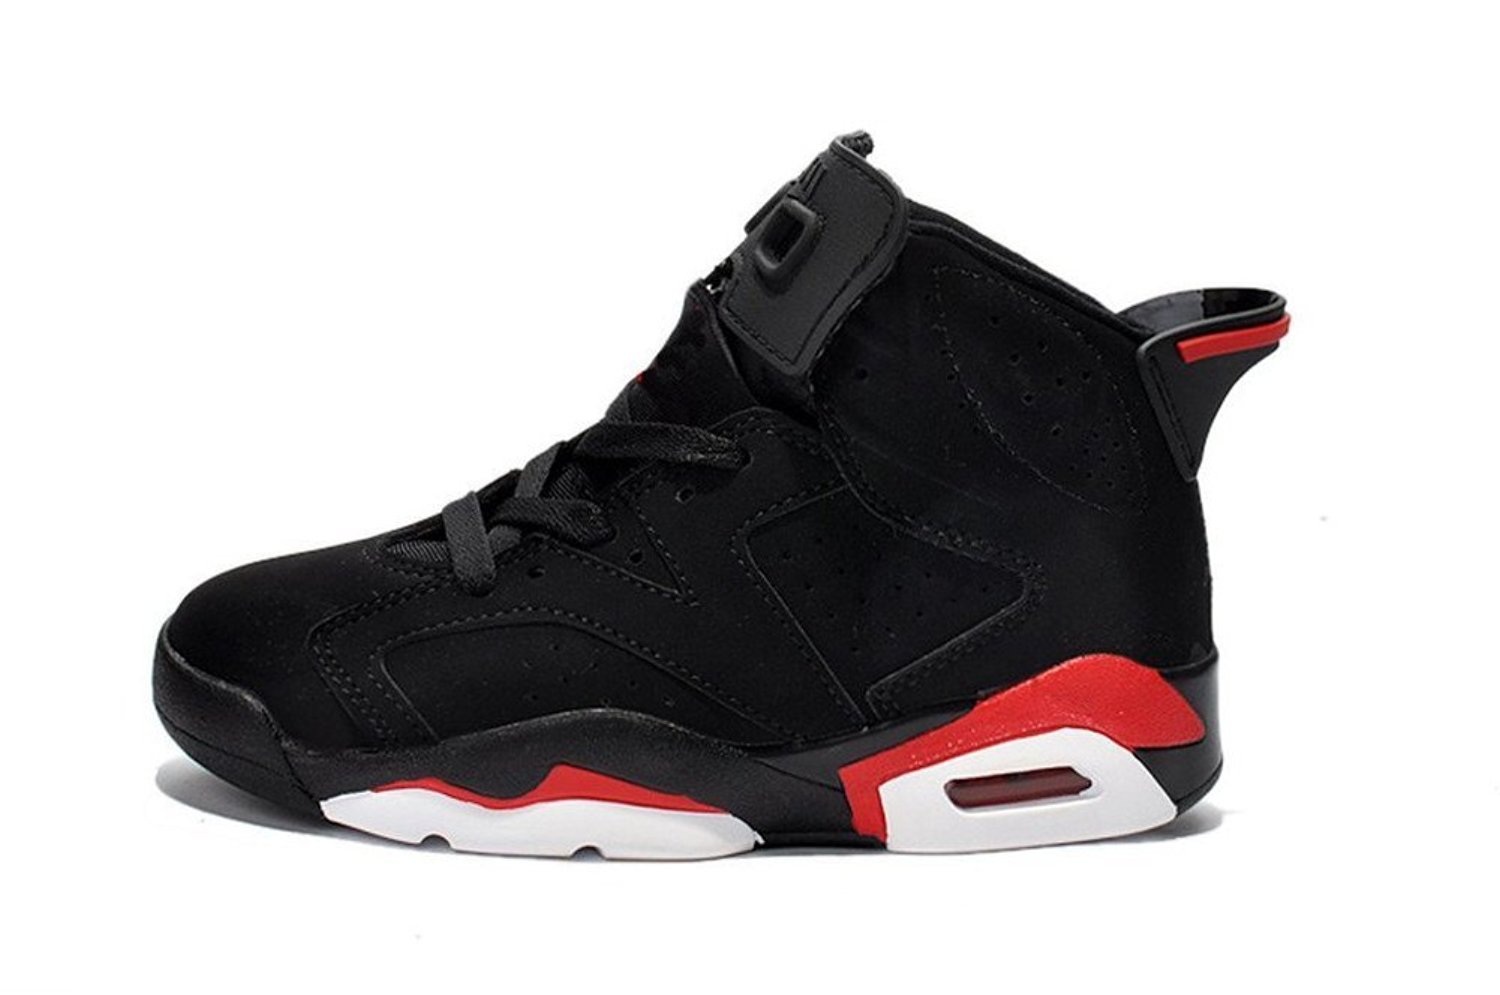 154185bbe192d1 Air 6 Retro MAMA® Black Infrared AJ6 Basketball Shoes for Girs and Boys  (Little